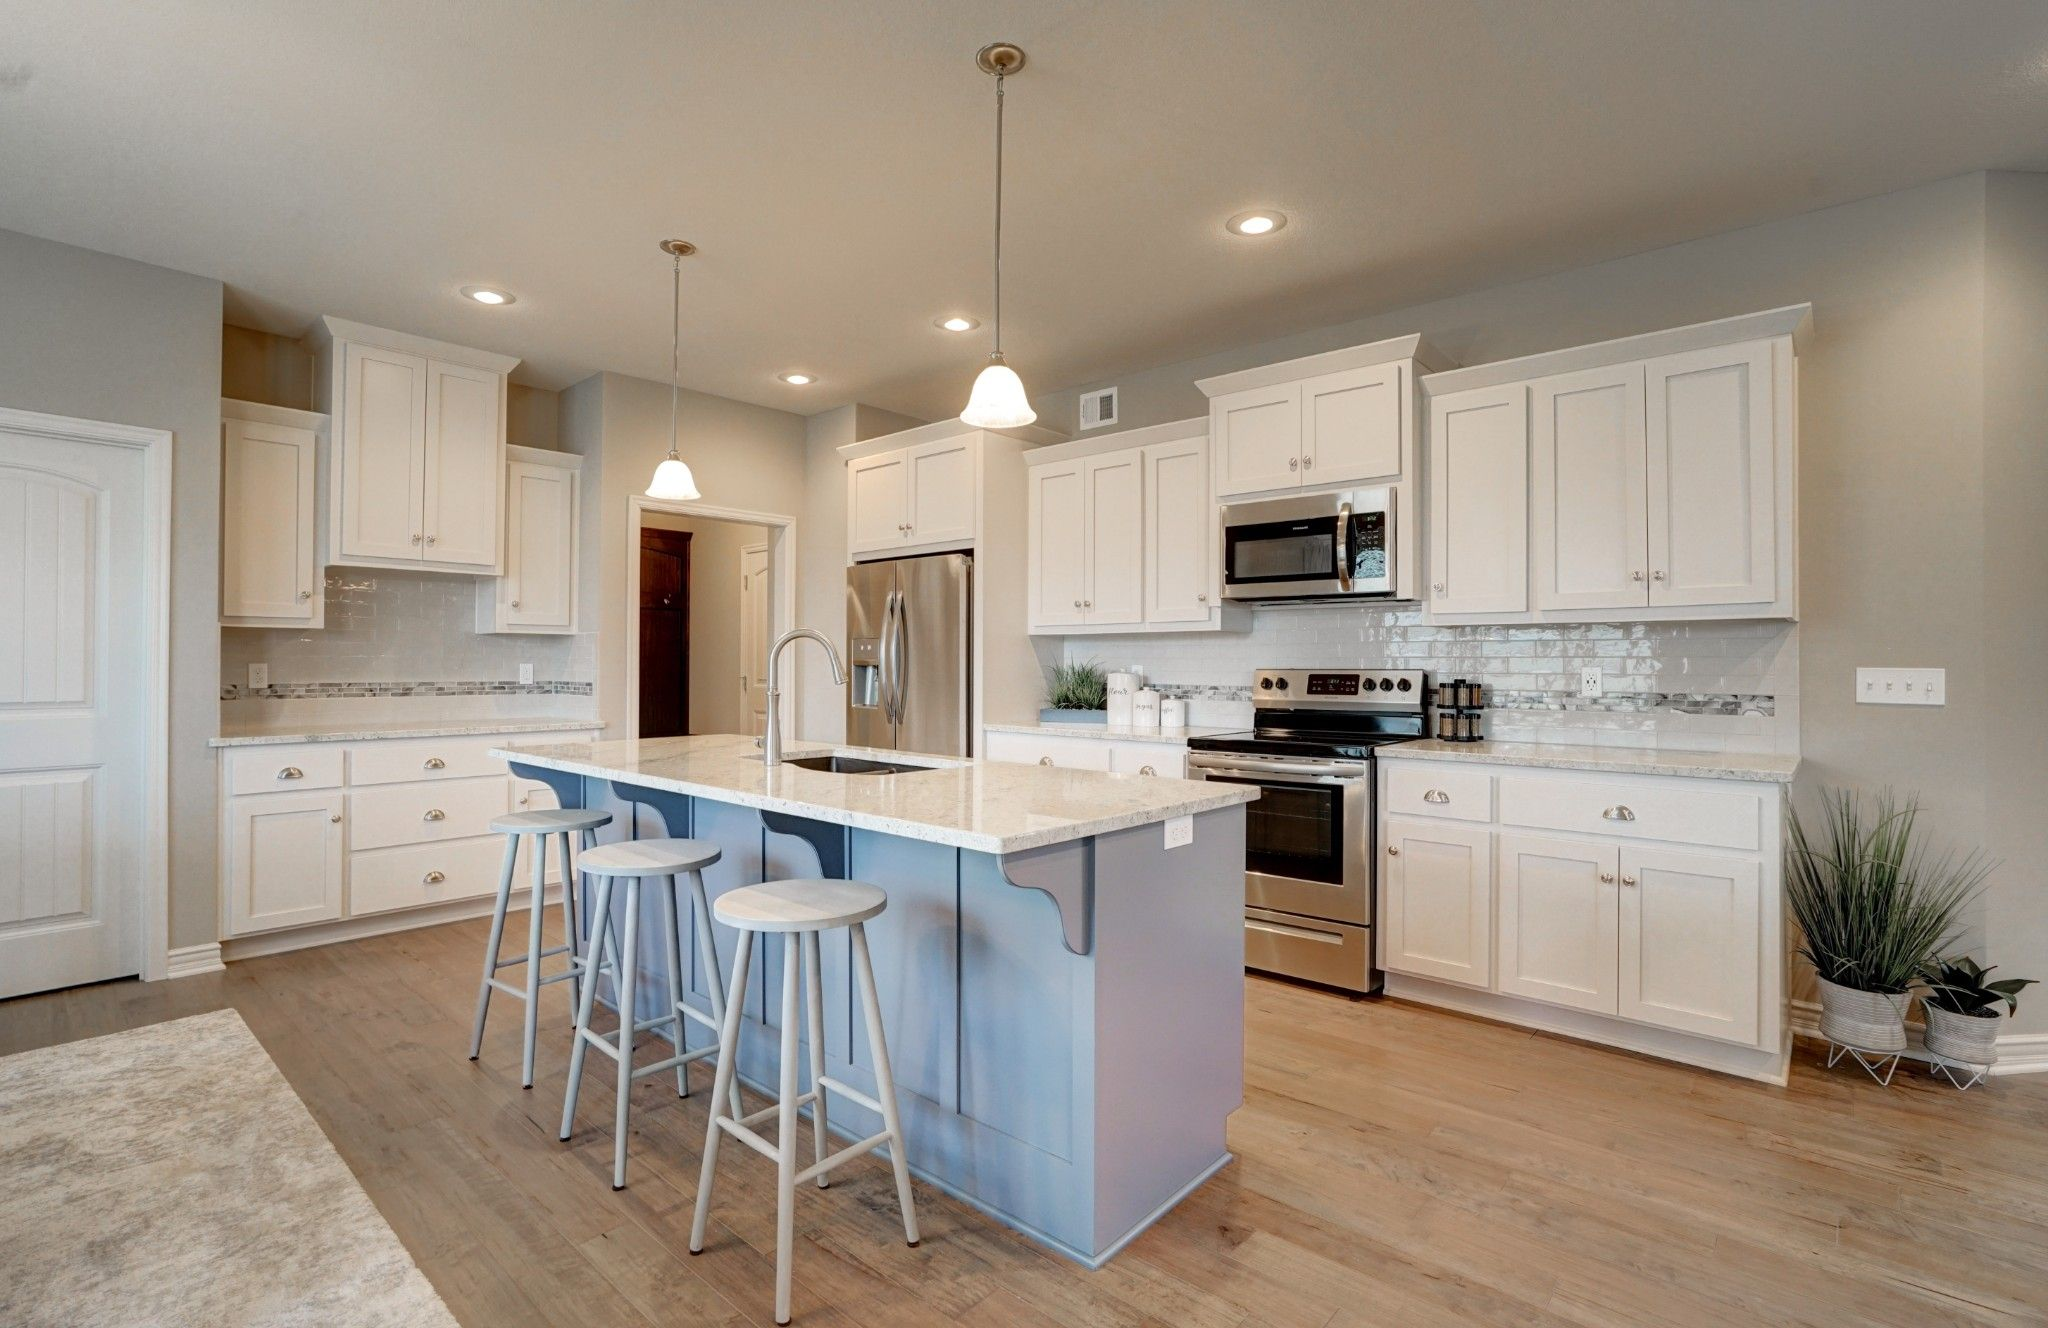 Kitchen featured in the Palmer II - IA By Summit Homes in Des Moines, IA